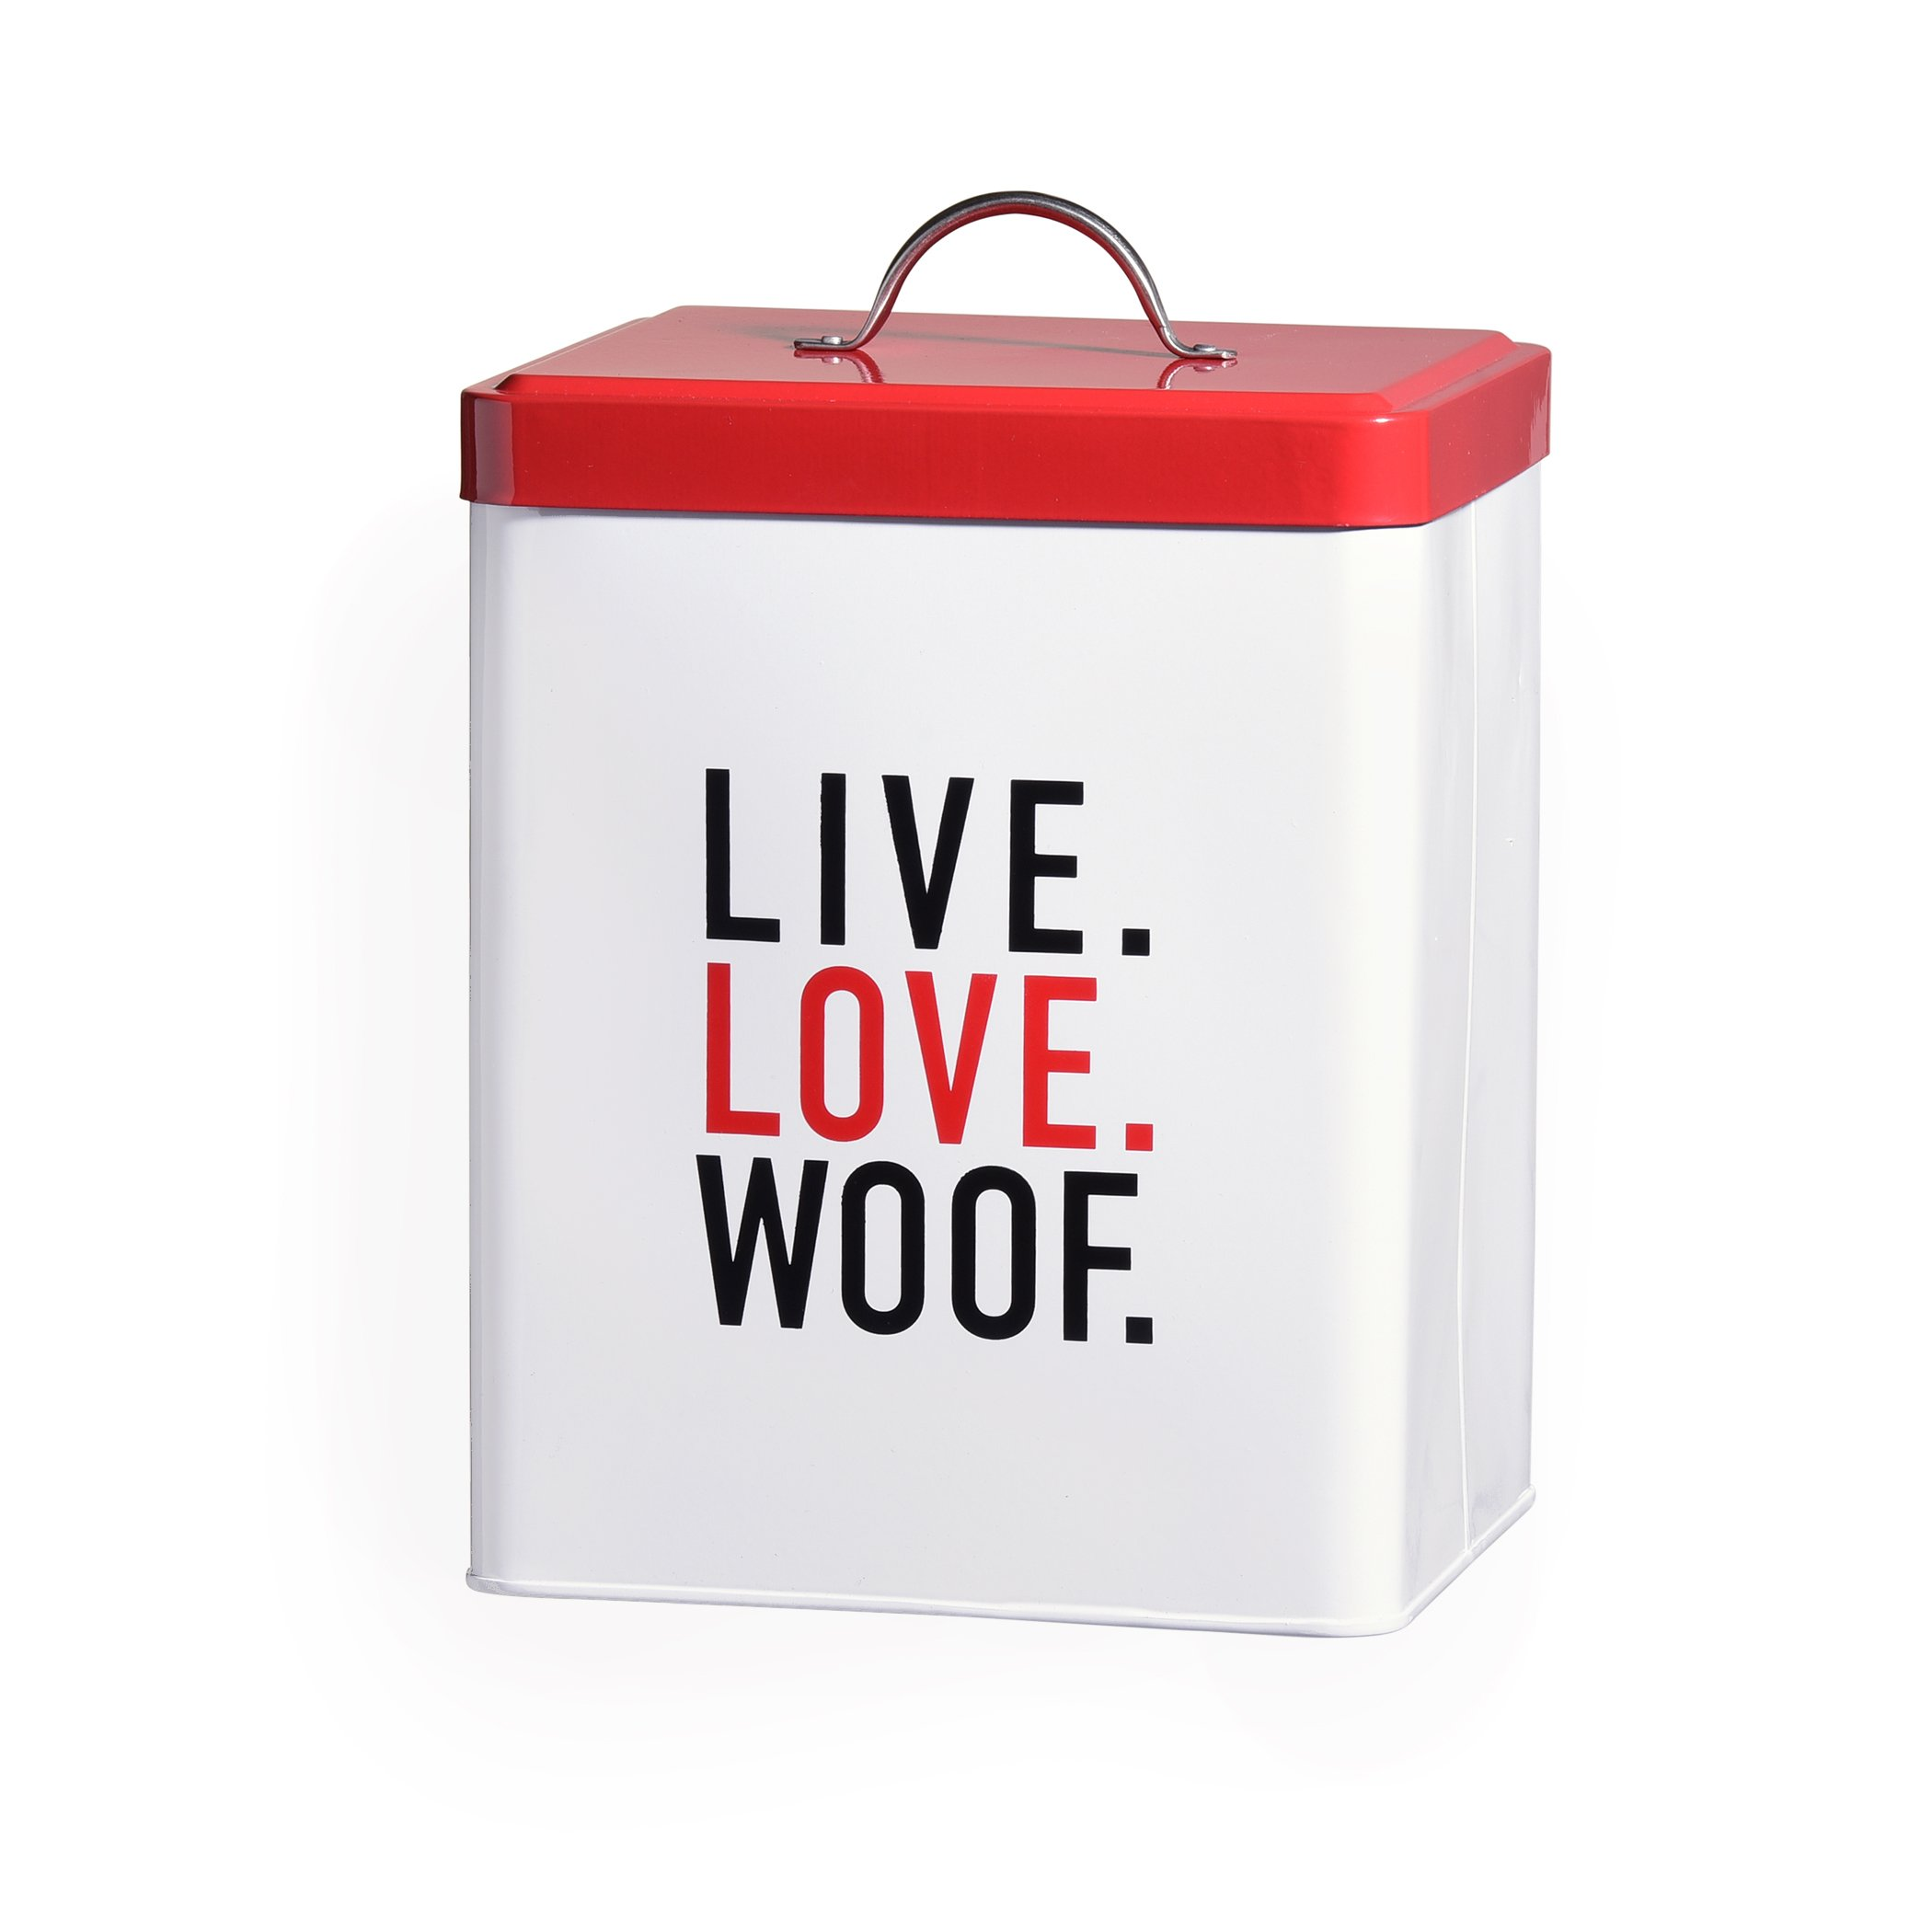 Amici Pet 7CDI038R Live Love Woof Metal Storage Canister, 208 oz, White/Red/Black